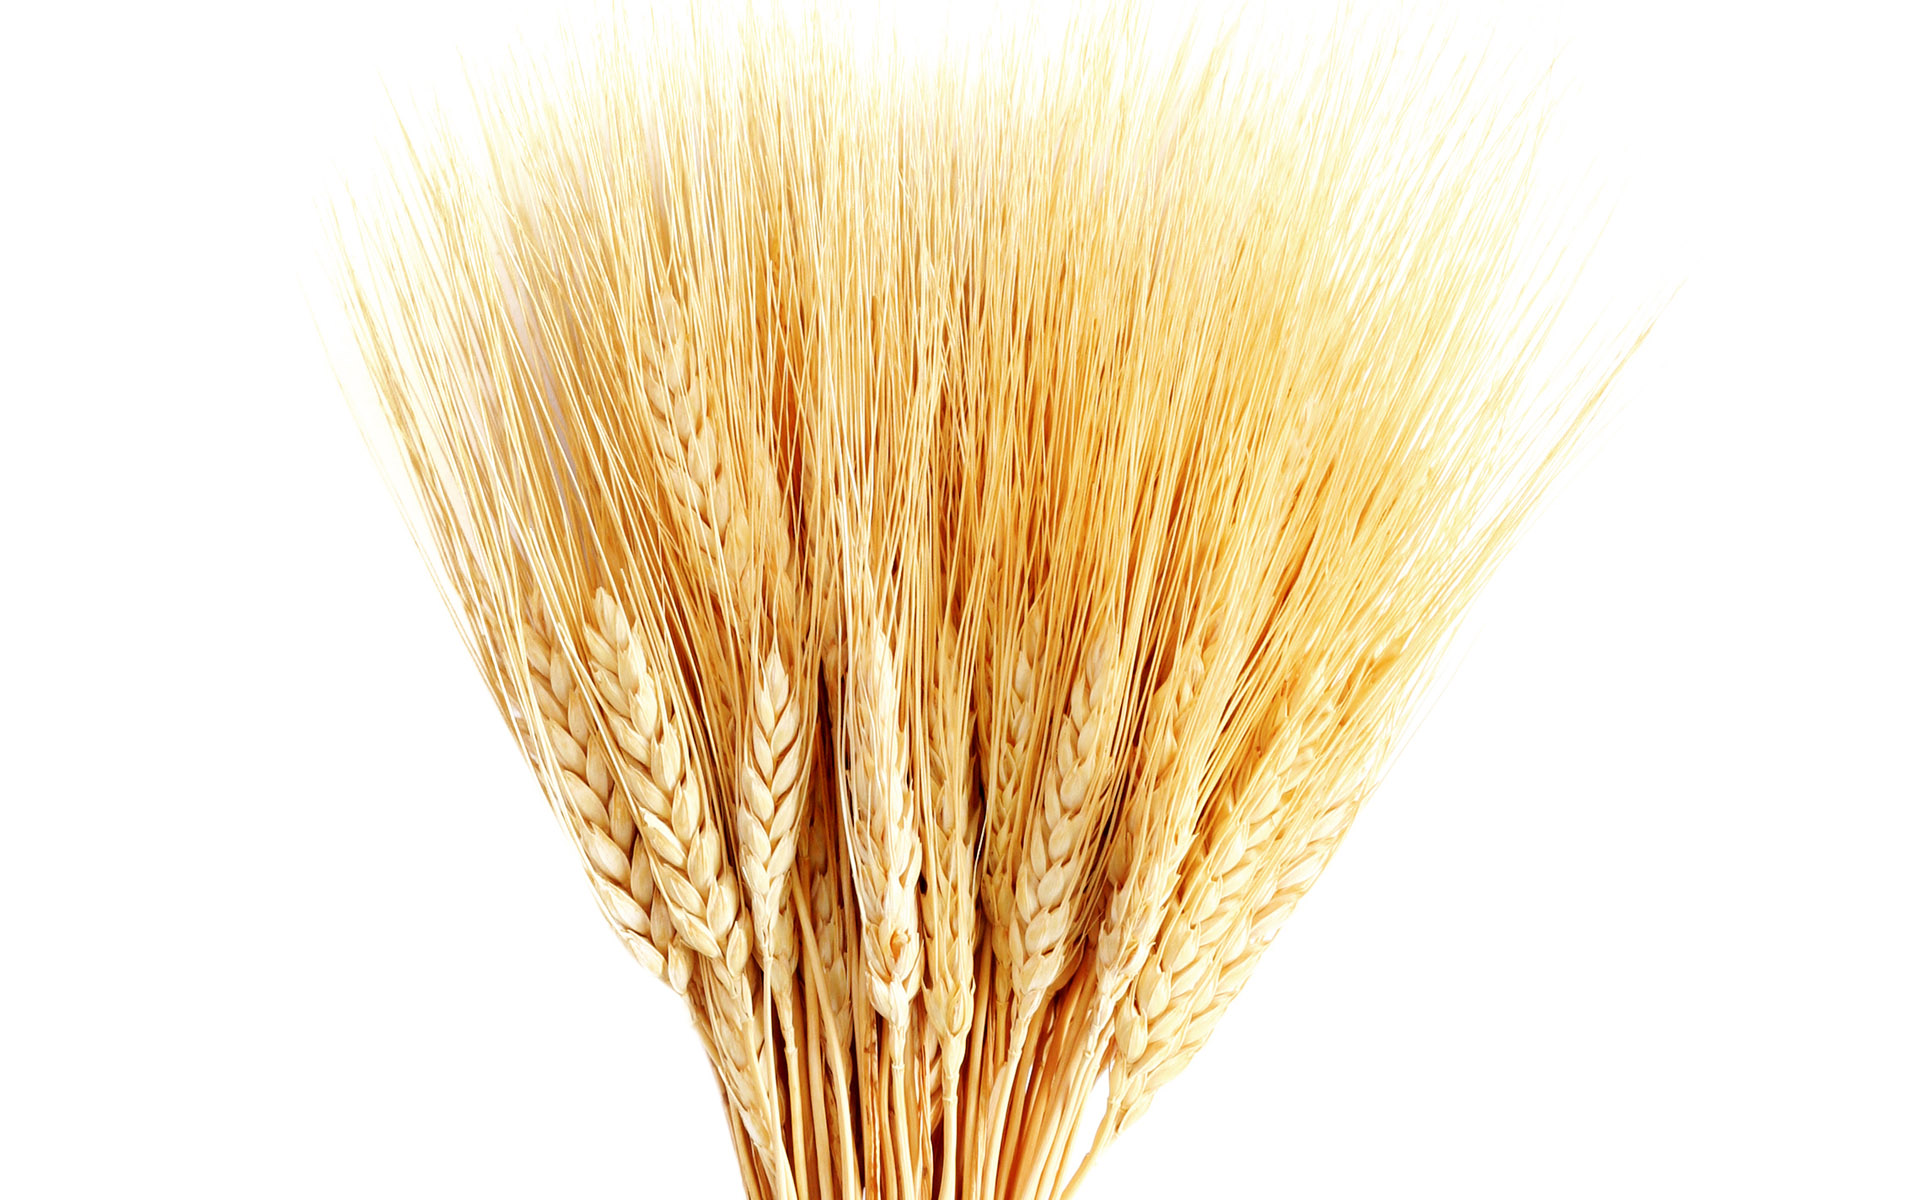 Find Heritage in Your Wheat